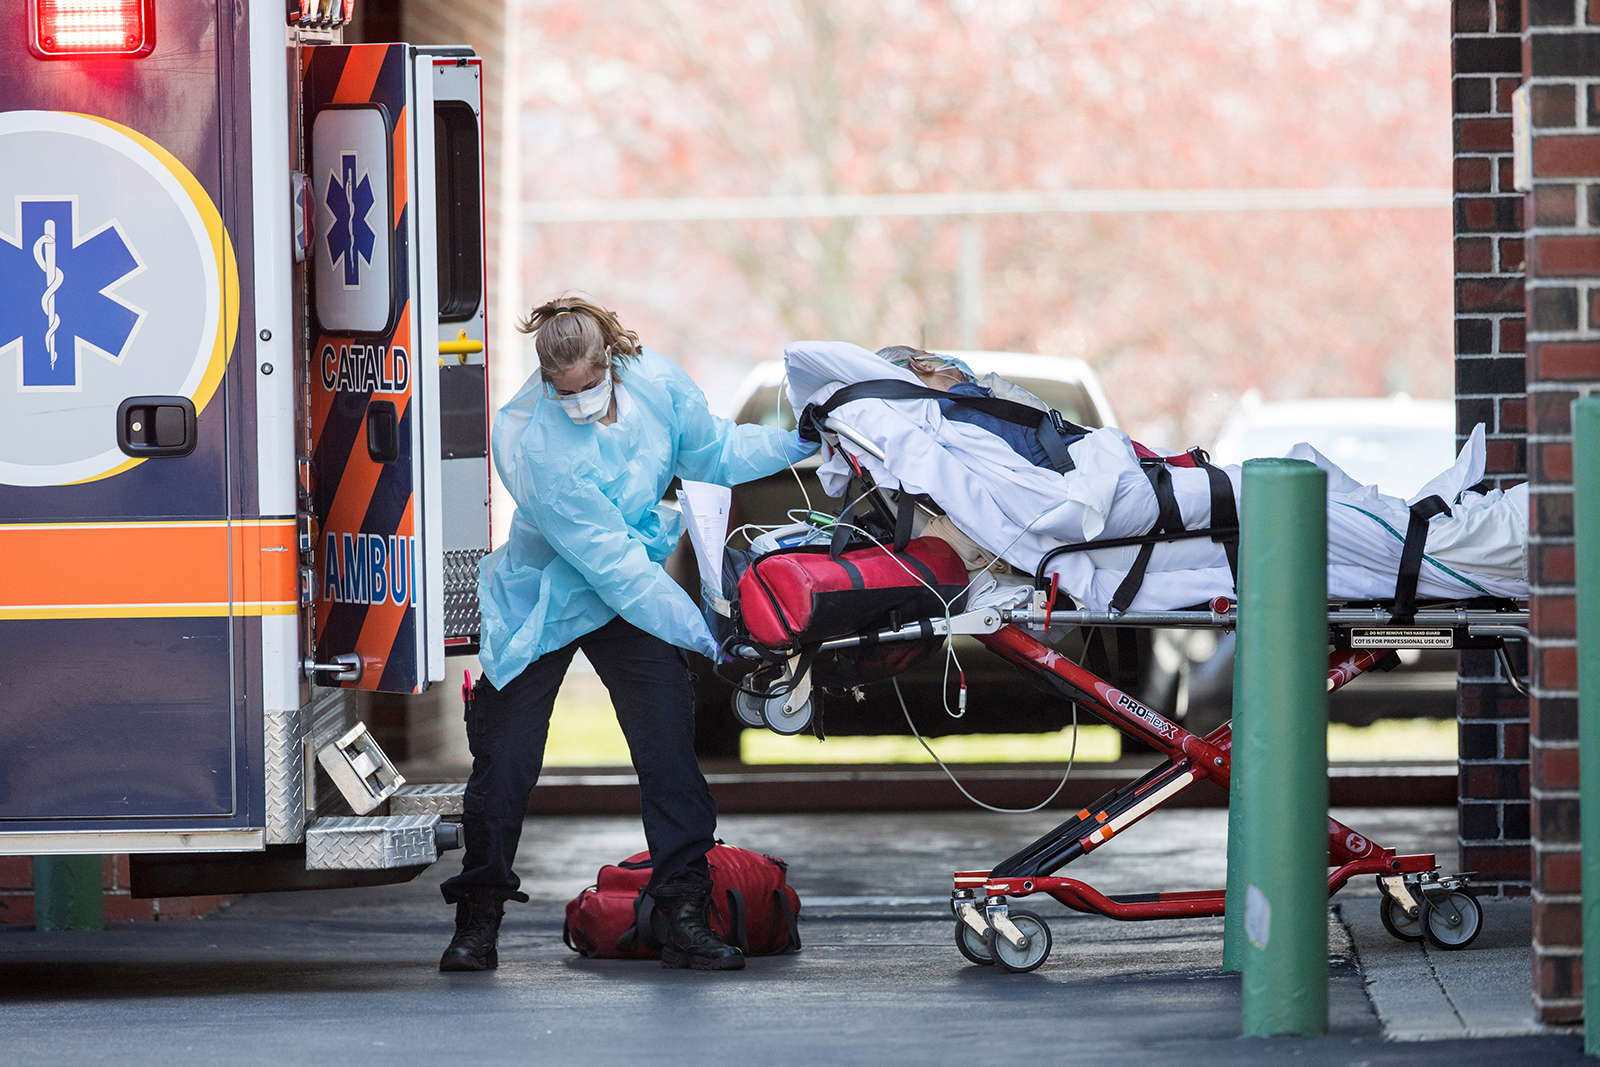 First responders load a patient into an ambulance from a nursing home where multiple people have contracted Covid-19 on April 17 in Chelsea, Massachusetts.